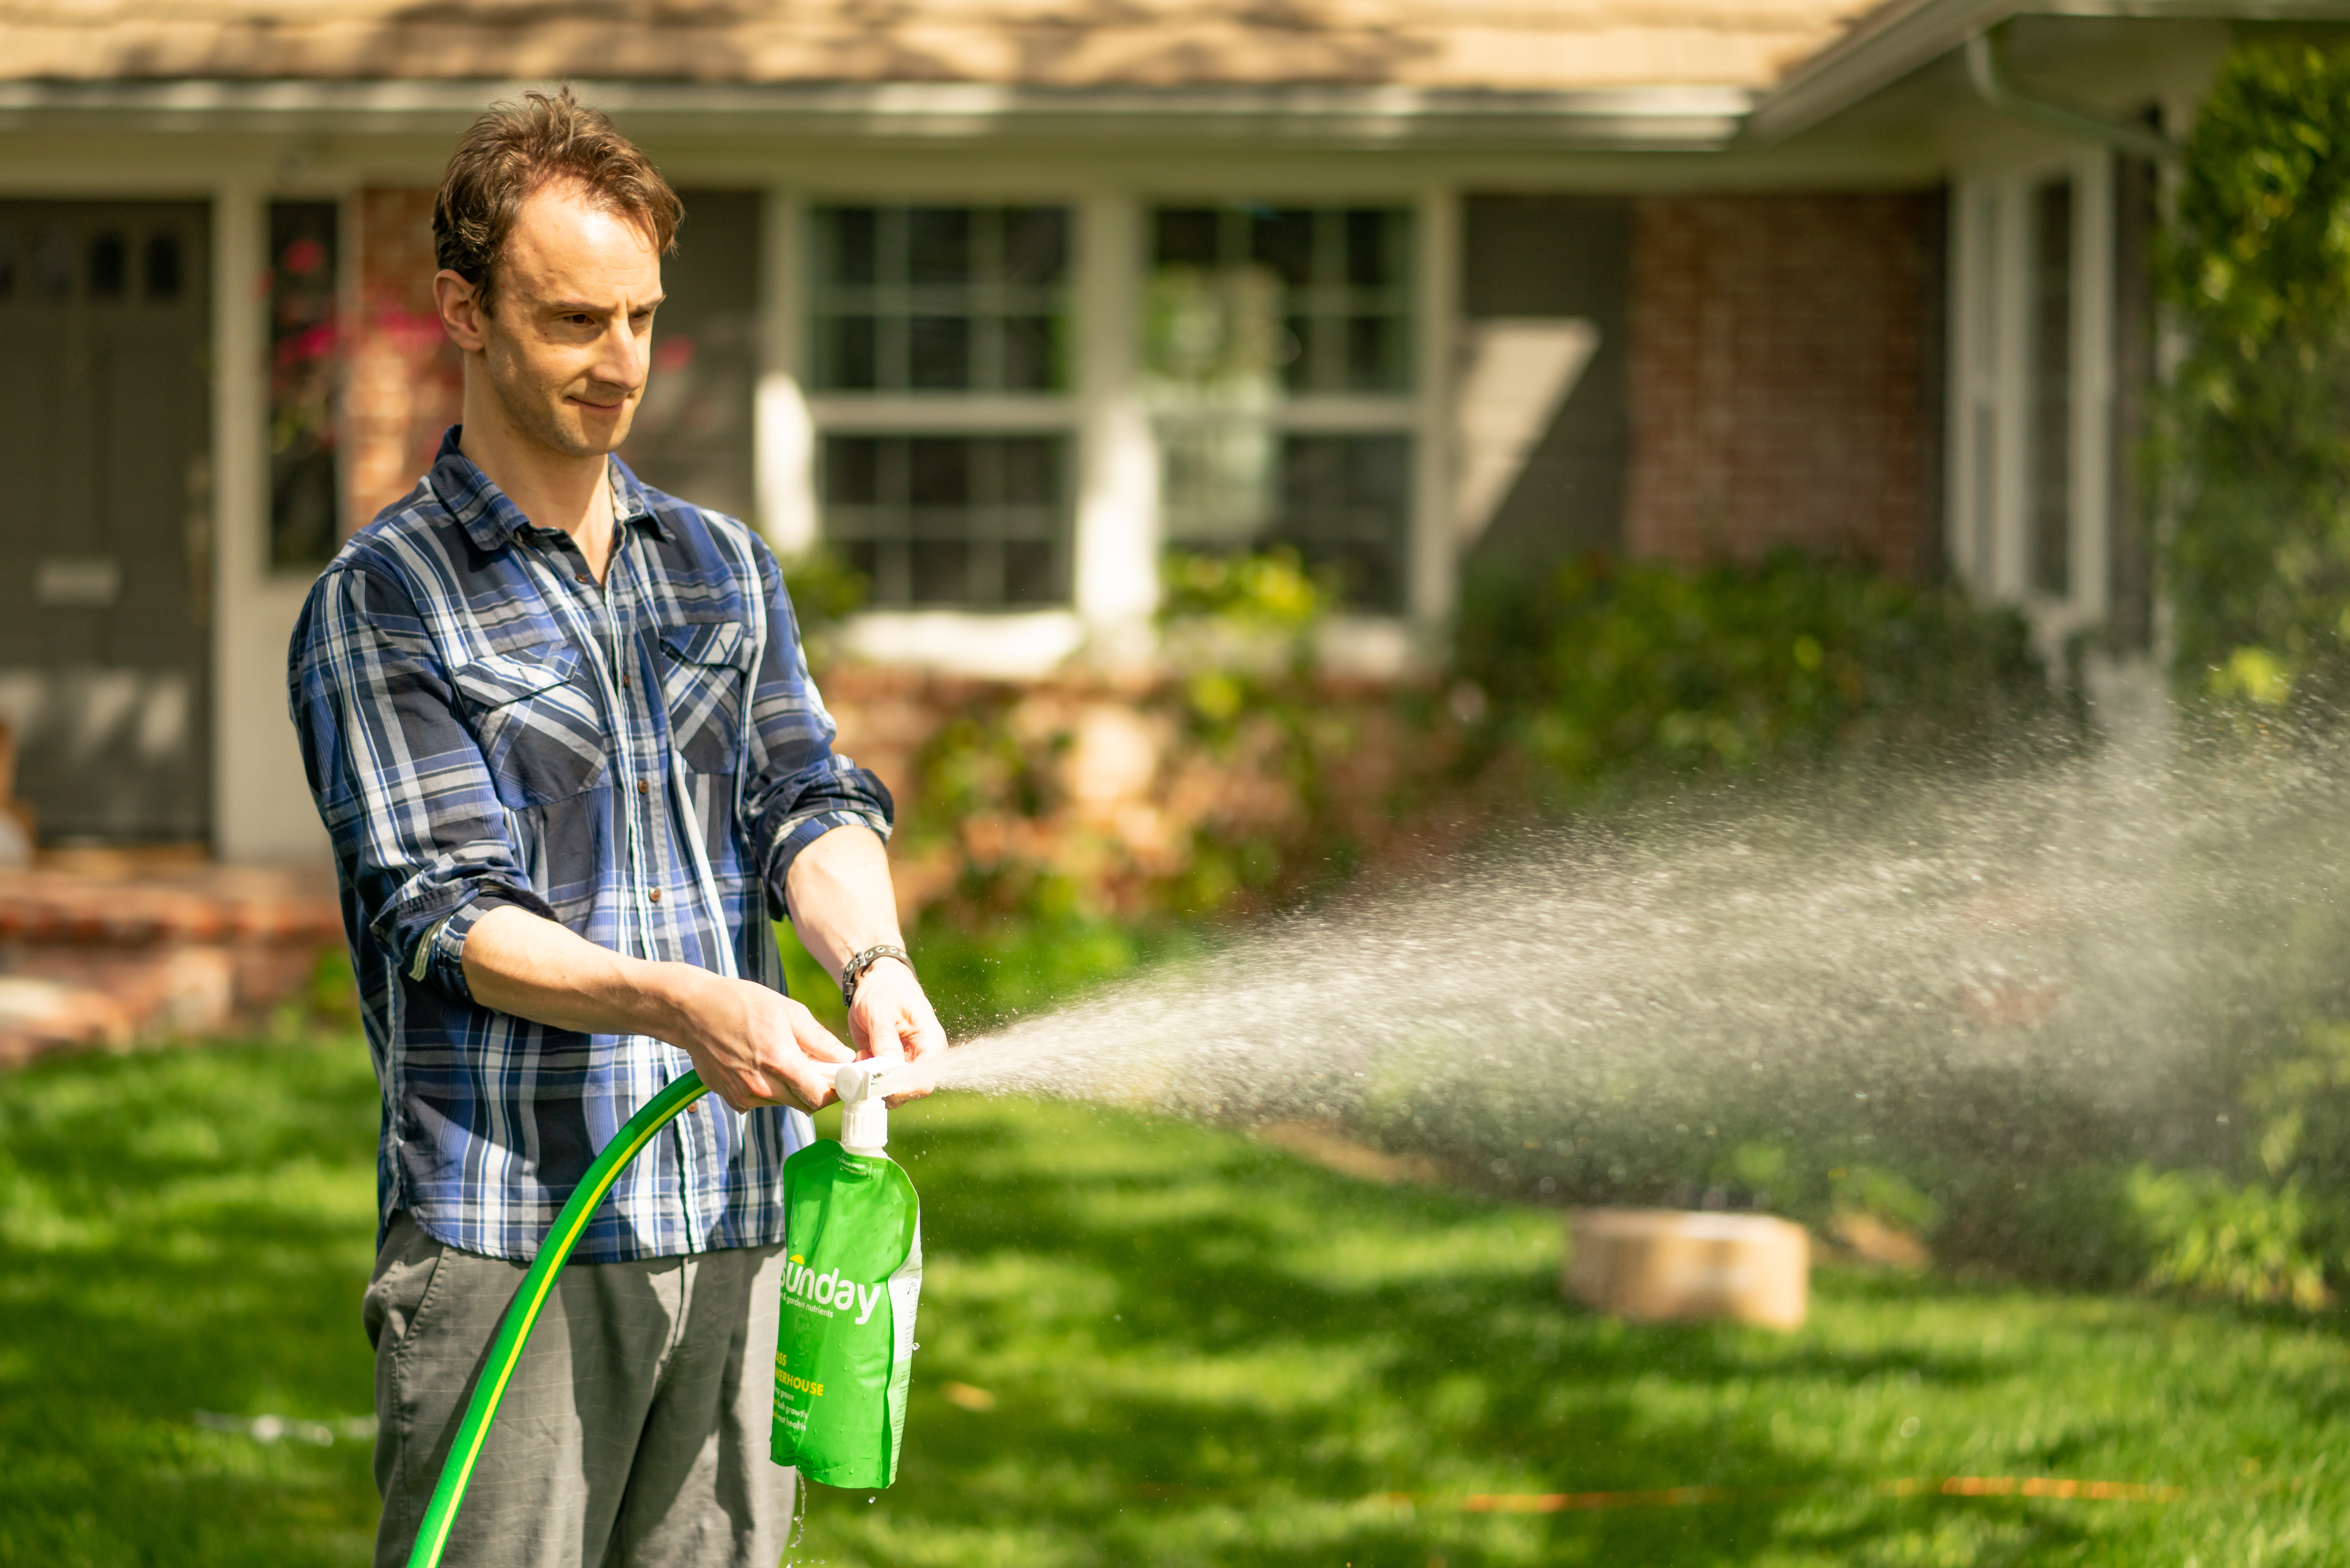 A man spays his lawn with a green pouch of fertilizer.